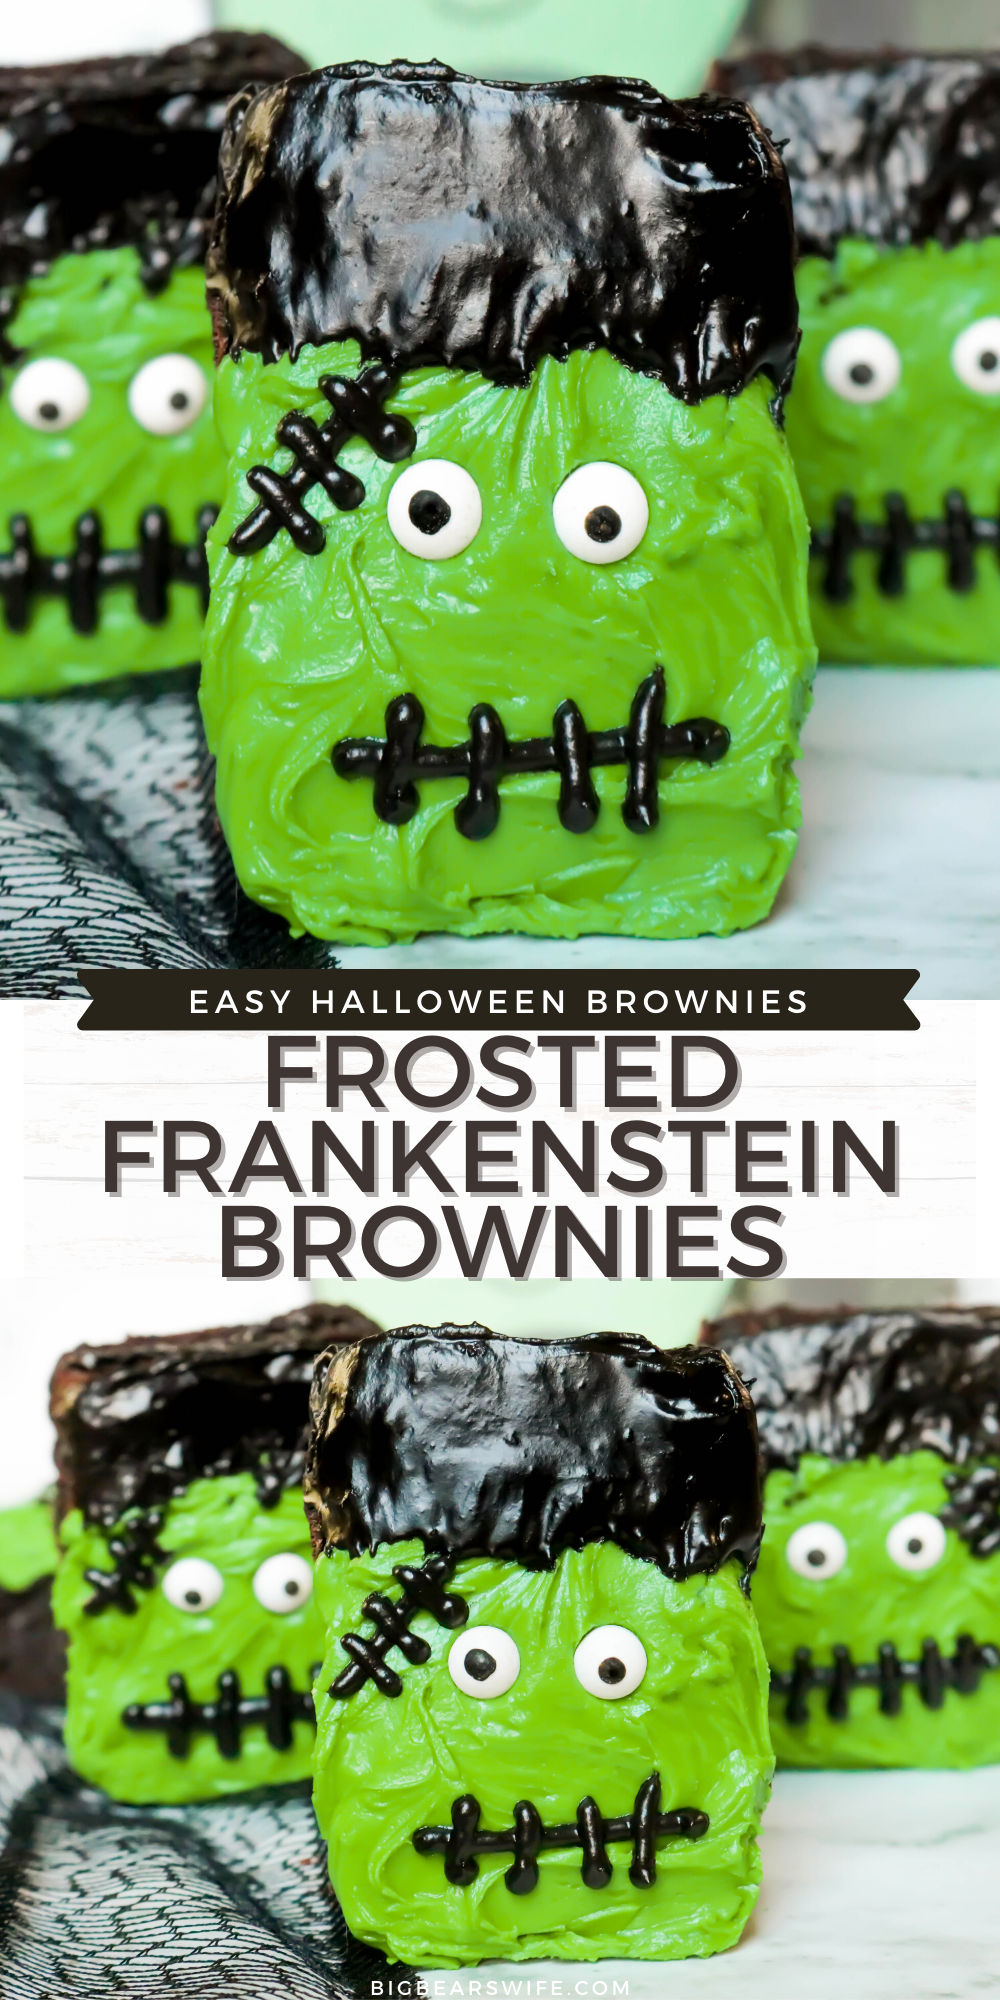 Frosted Frankenstein Brownies are perfect for boxed brownie or homemade brownies with my favorite brownie recipe. Use a bit of frosting and candy eyes to turn brownies into the cutest Halloween brownies. A great simple Halloween dessert recipe that is great for Halloween parties. Also a fun Halloween dessert to make with kids! Use store bought brownies for a quick last minute Halloween treat! via @bigbearswife